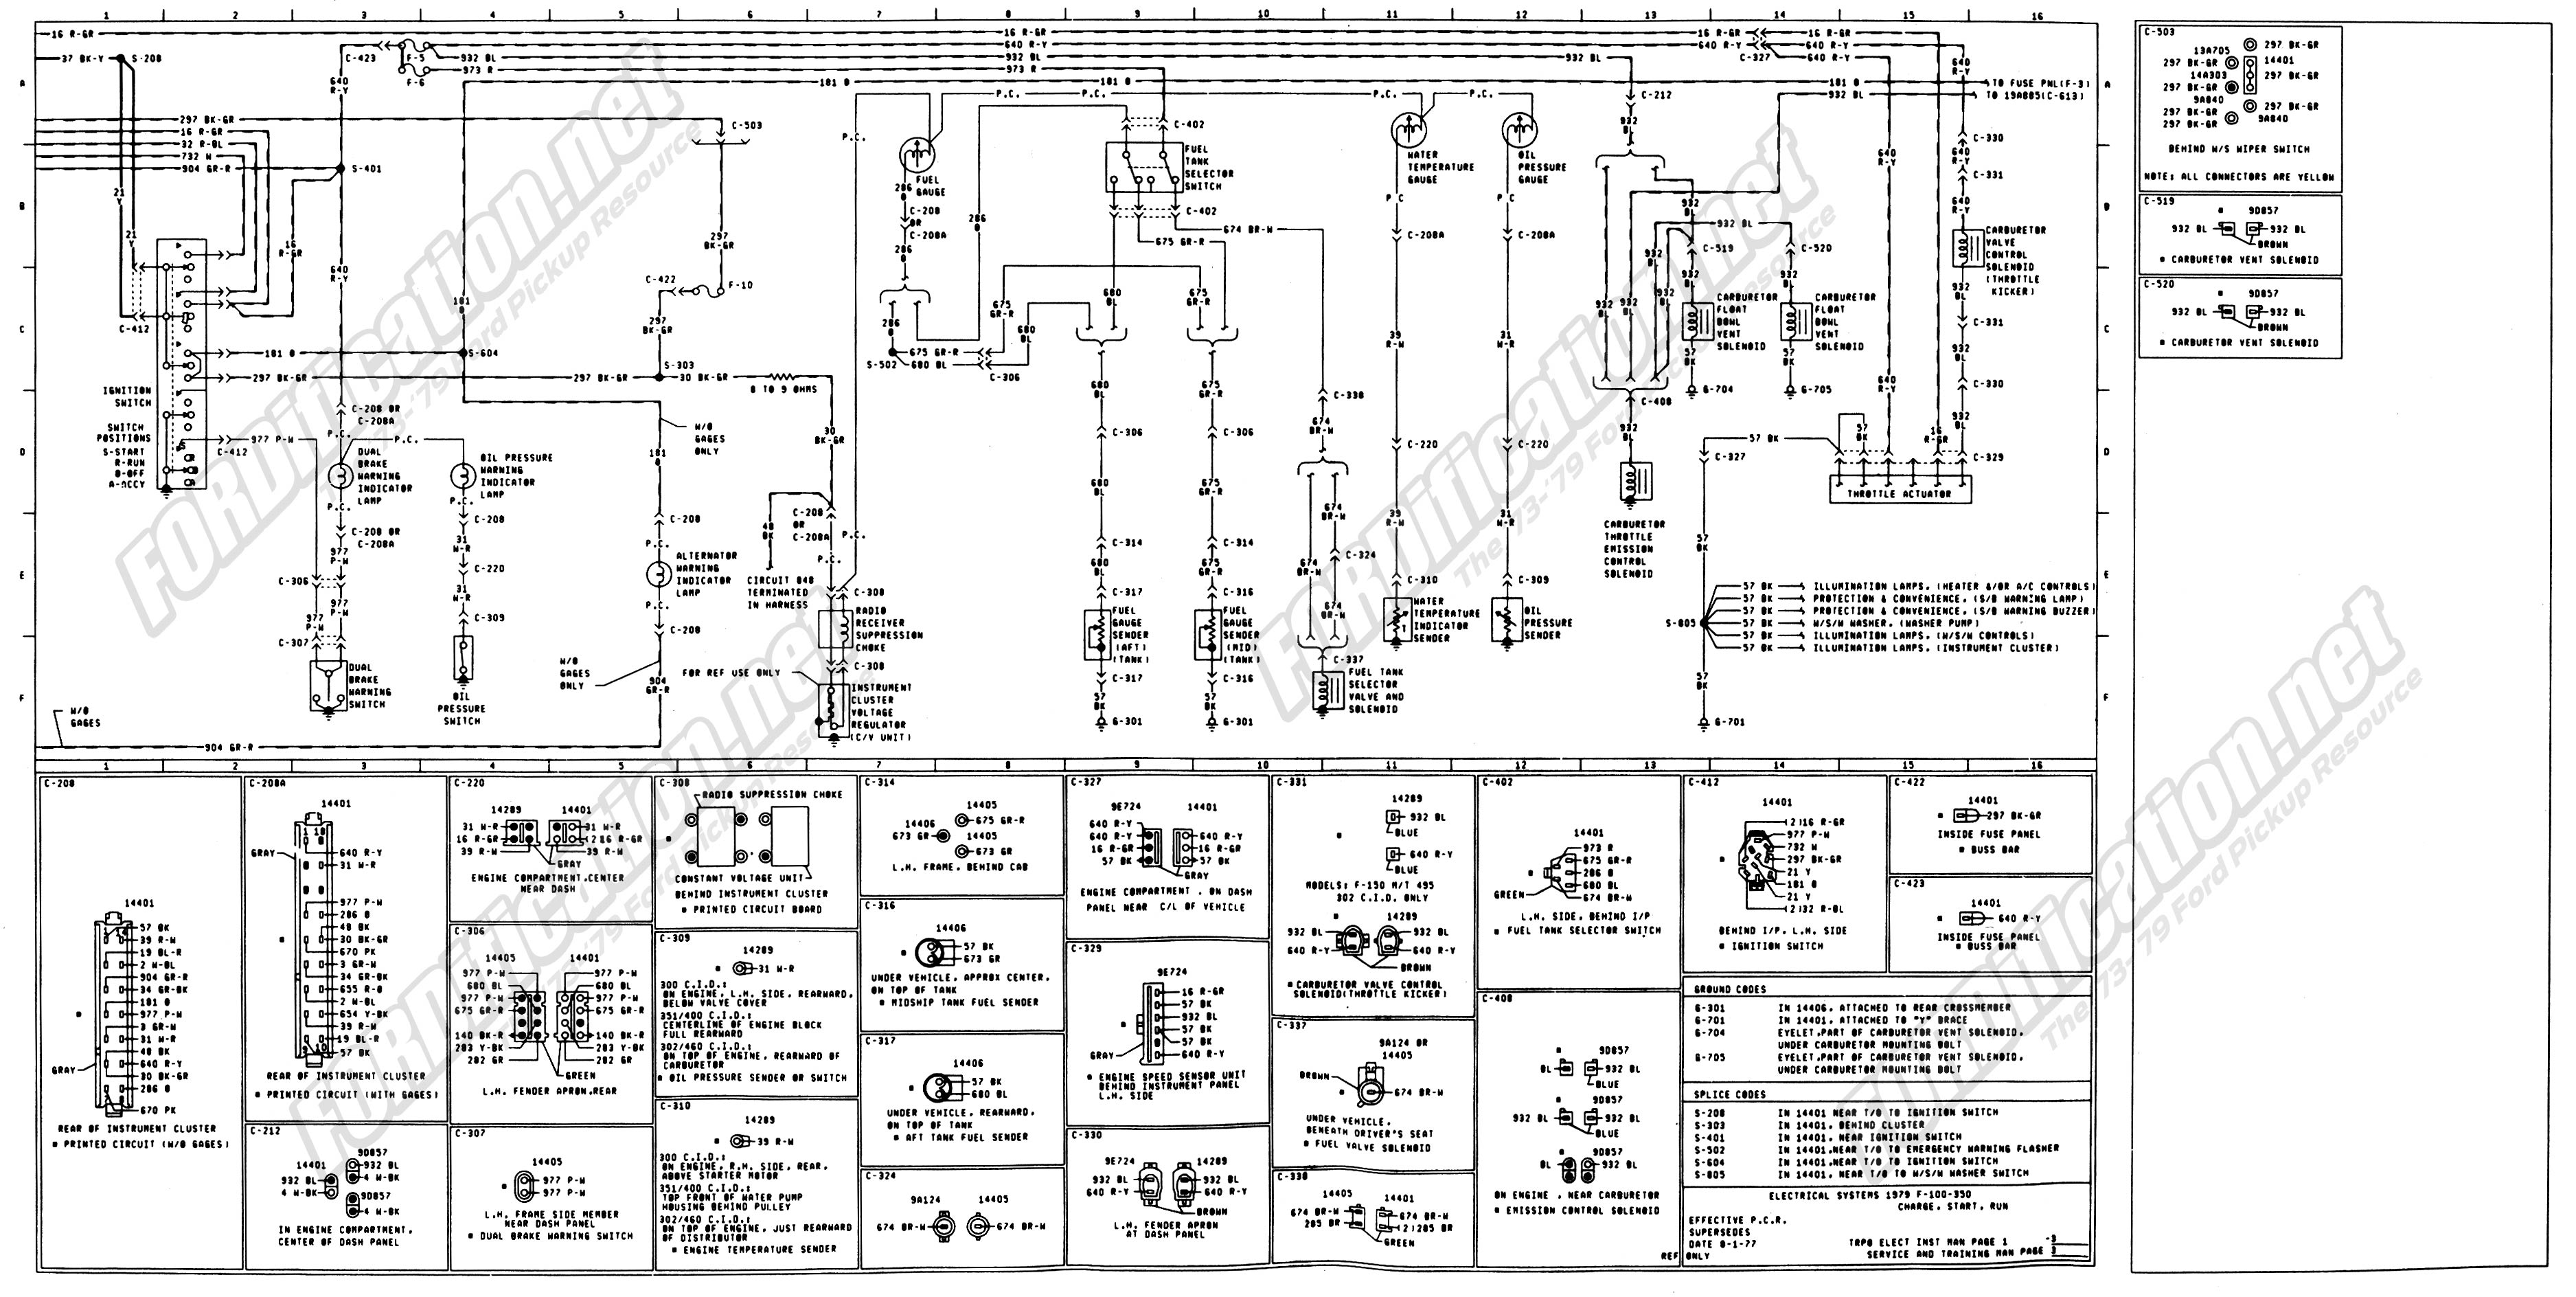 1979 F150 Wiring Diagram in addition 70454 Ignition Actuator Replacement 85 W Tilt also 3c0lh Recently Bought Cute 1957 Ford F100 Download further 911832 Heater Resistor Location besides Neutral Start Switch Location On Boat. on 1978 ford f150 wiring harness 1